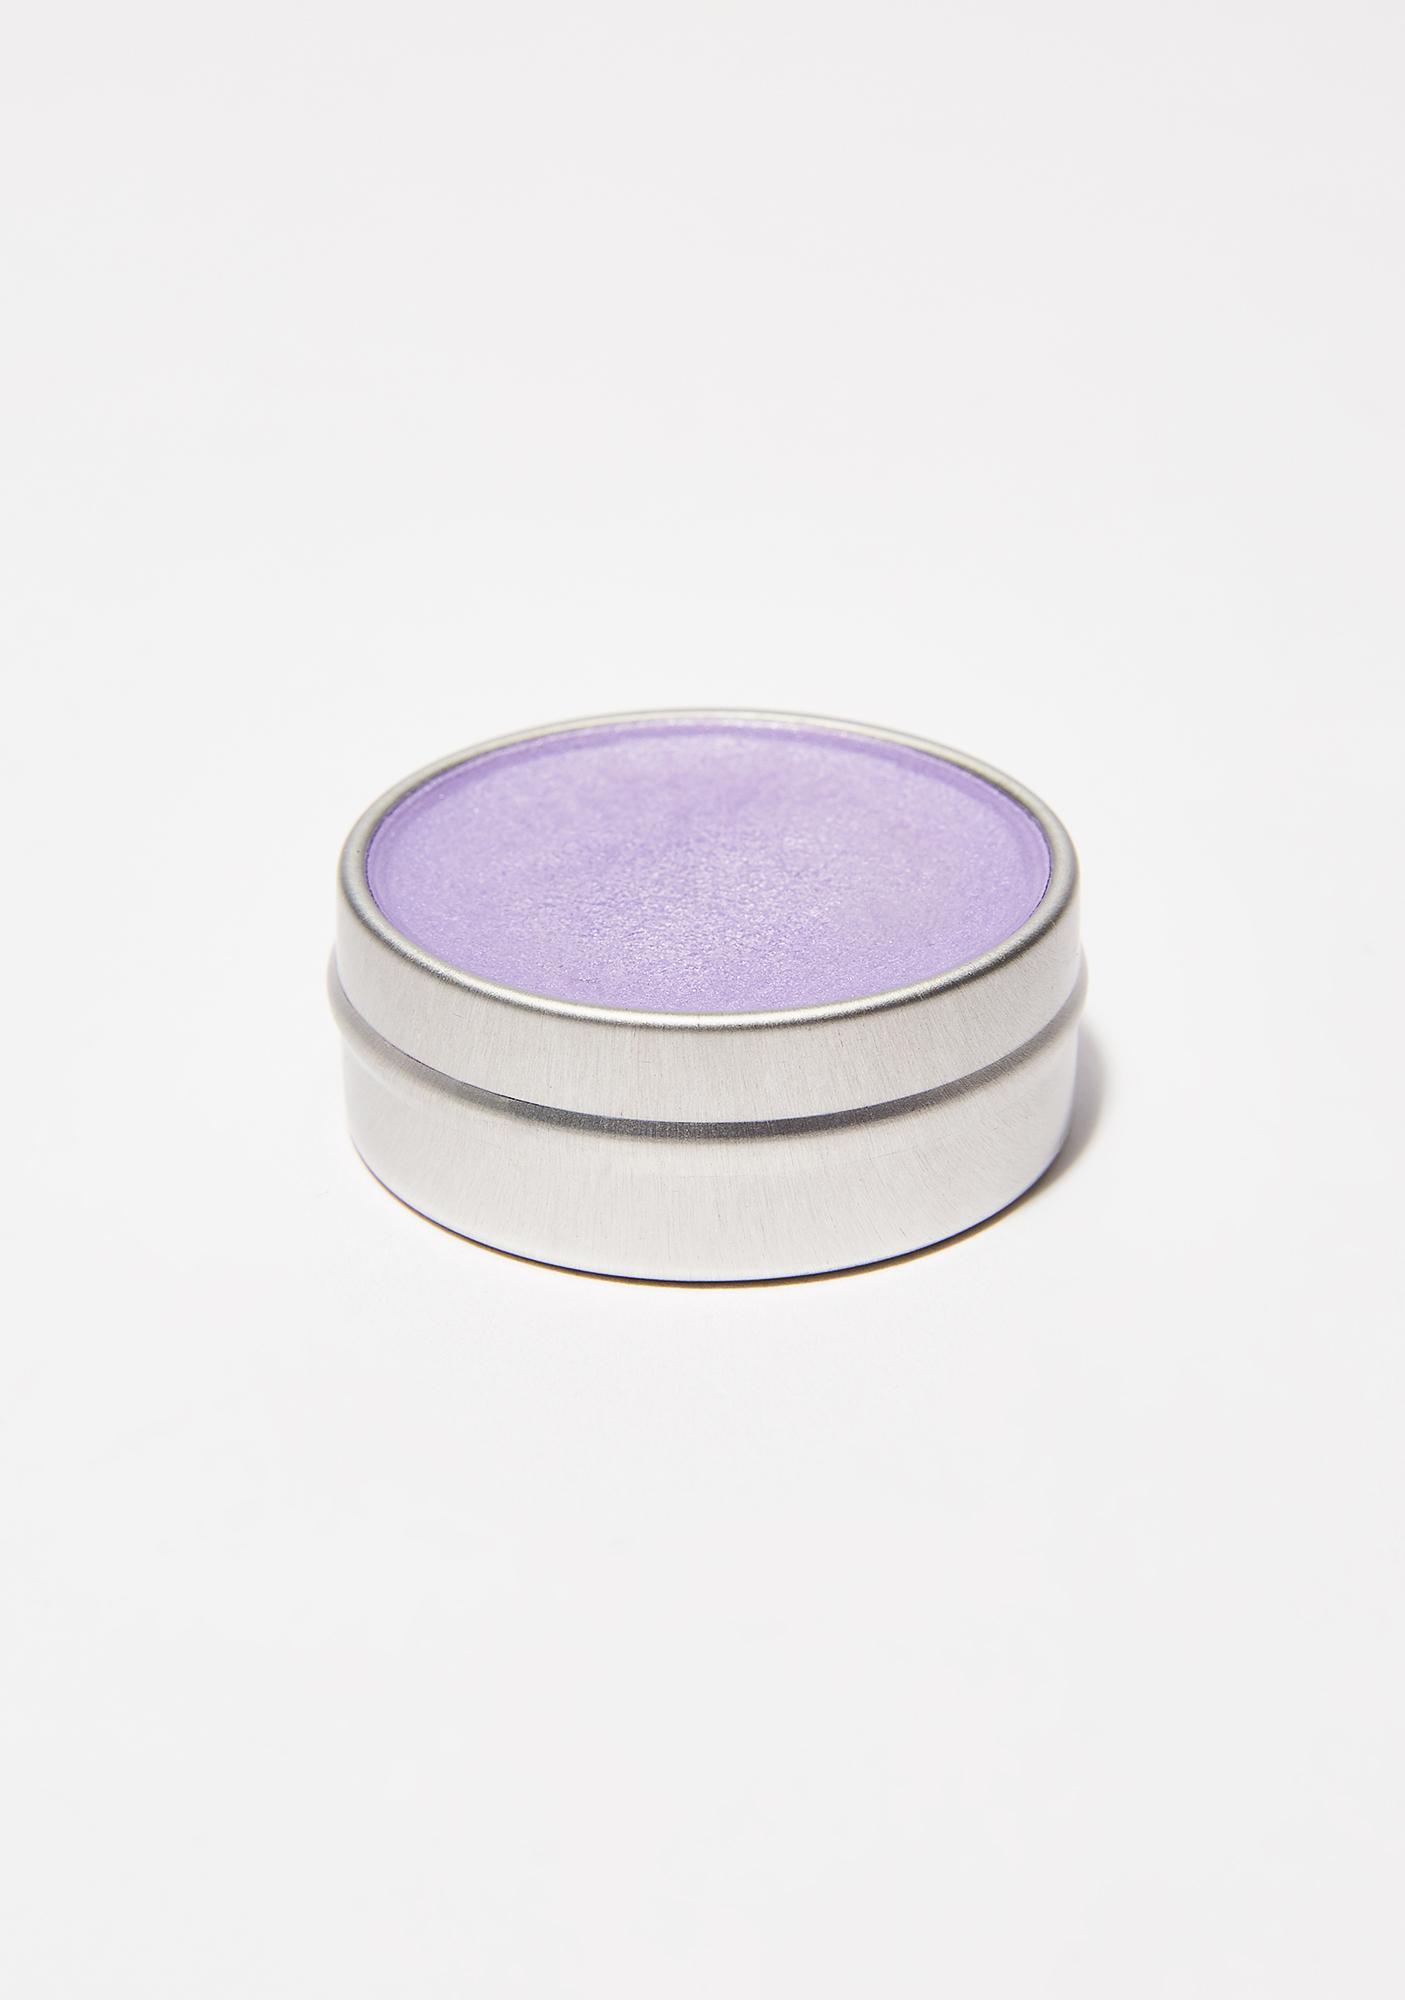 Rose Hips + Alchemy Purple Rain Illuminating Balm